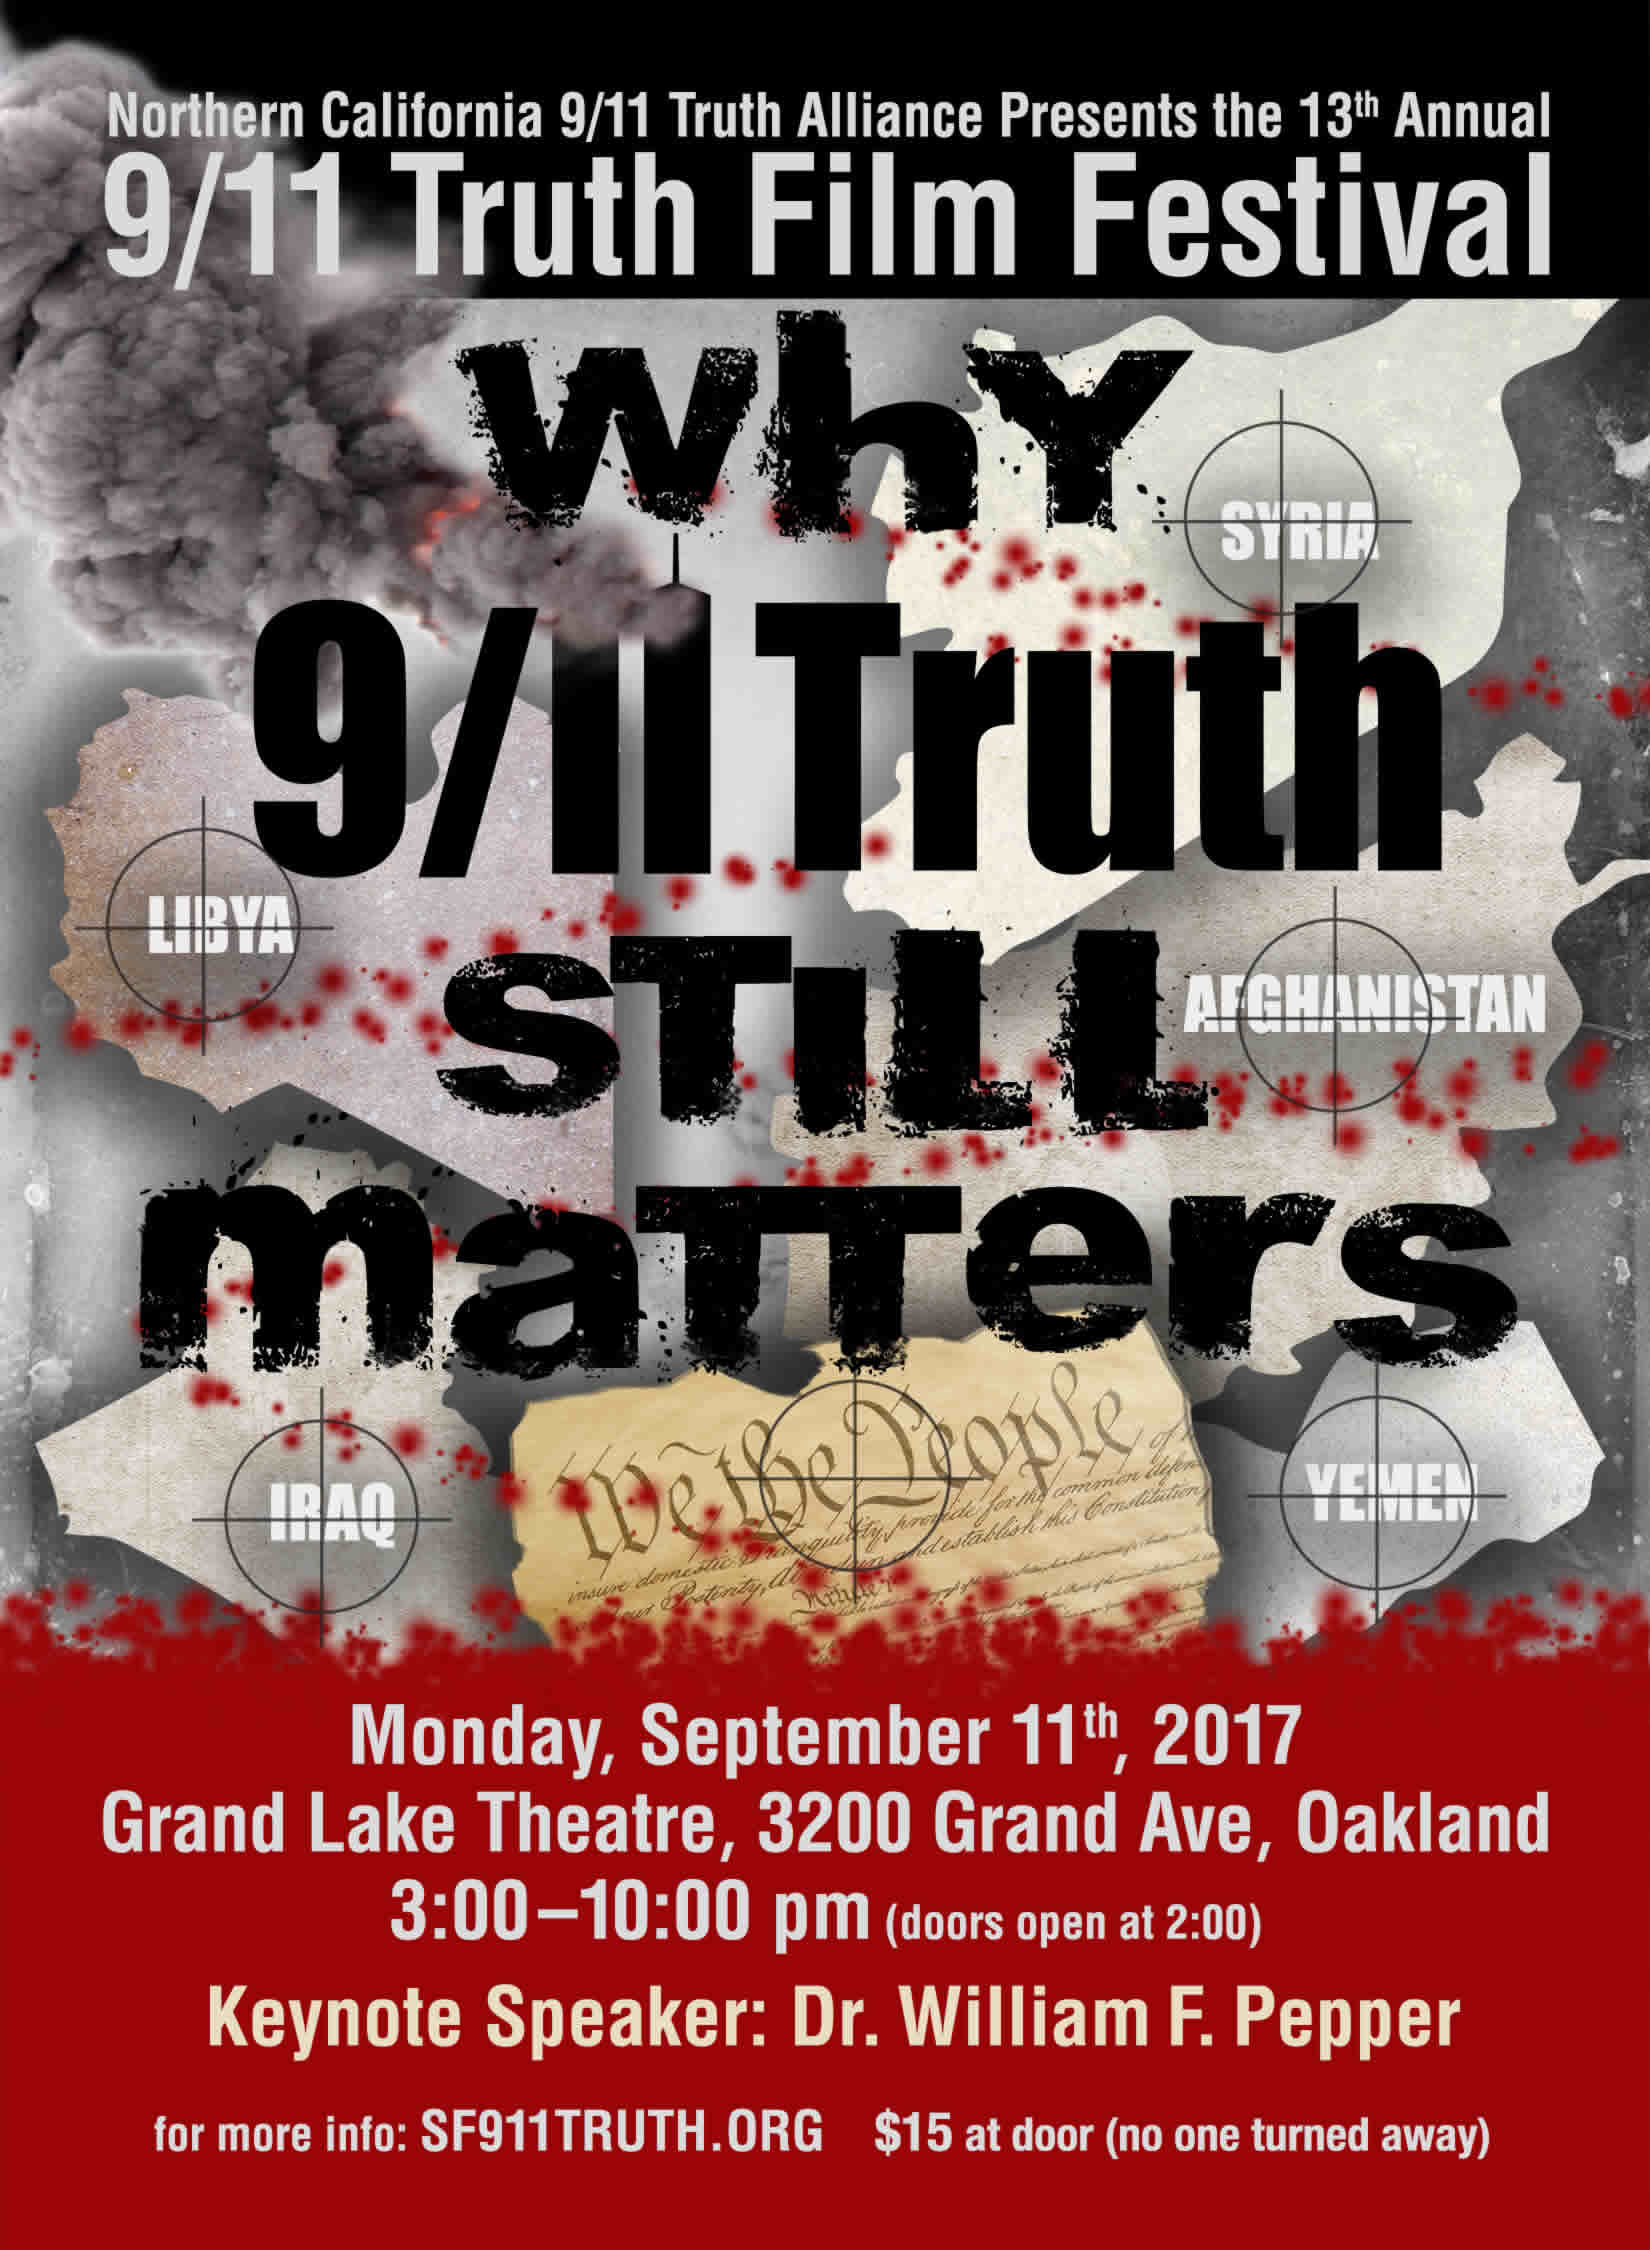 sf911truth Film Festival